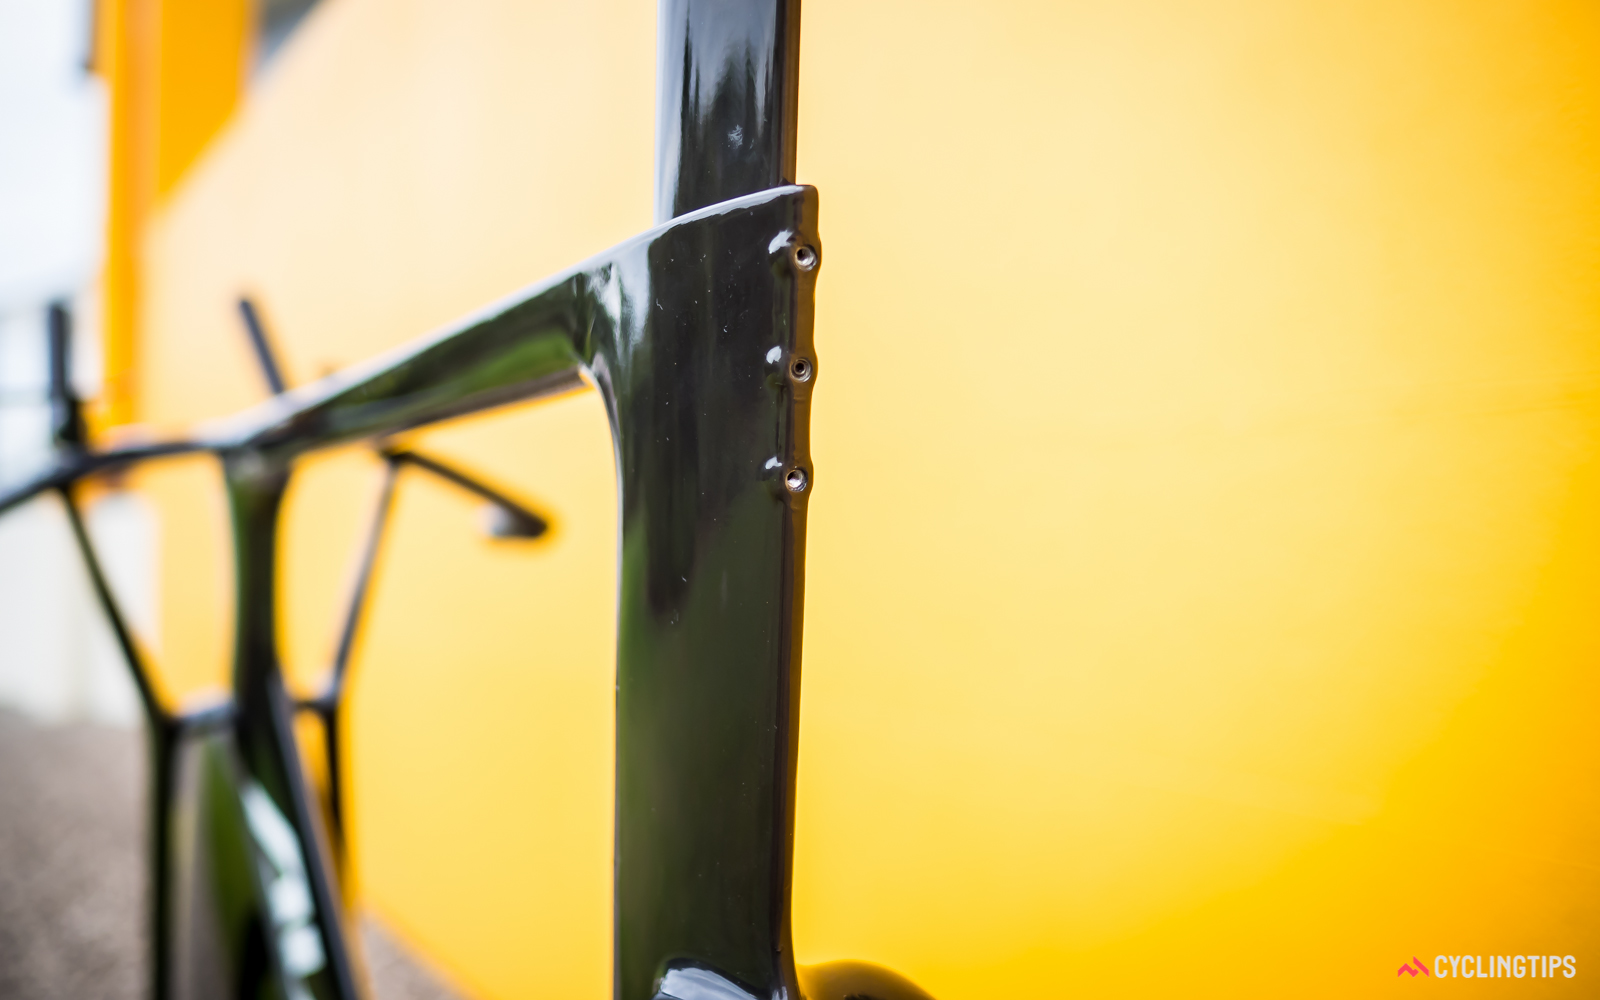 With a floor in the seat tube to secure saddle height, there's only a need for a few grub screws to lock the seatpost into the frame.